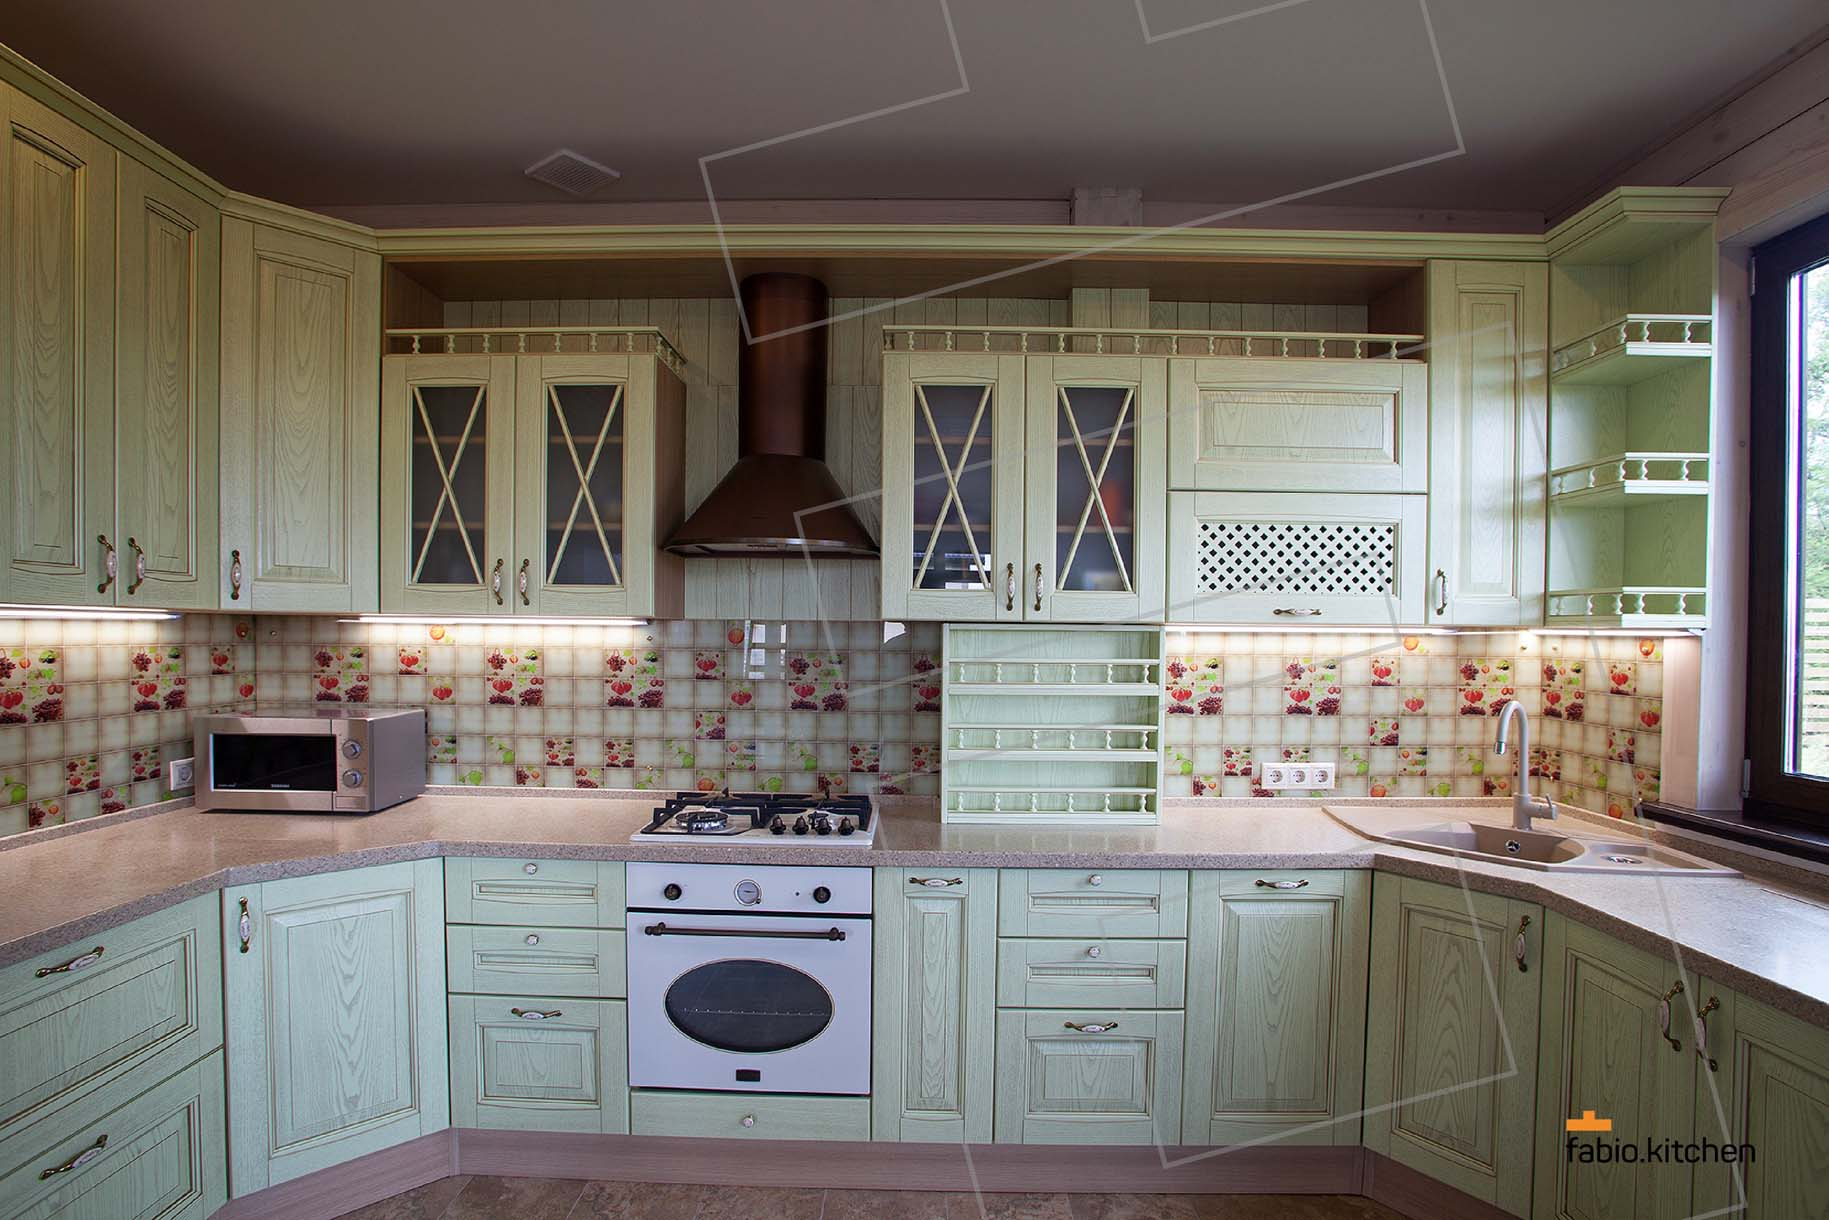 Fabio.Kitchen - Проект Кухни №1841 Фото 1